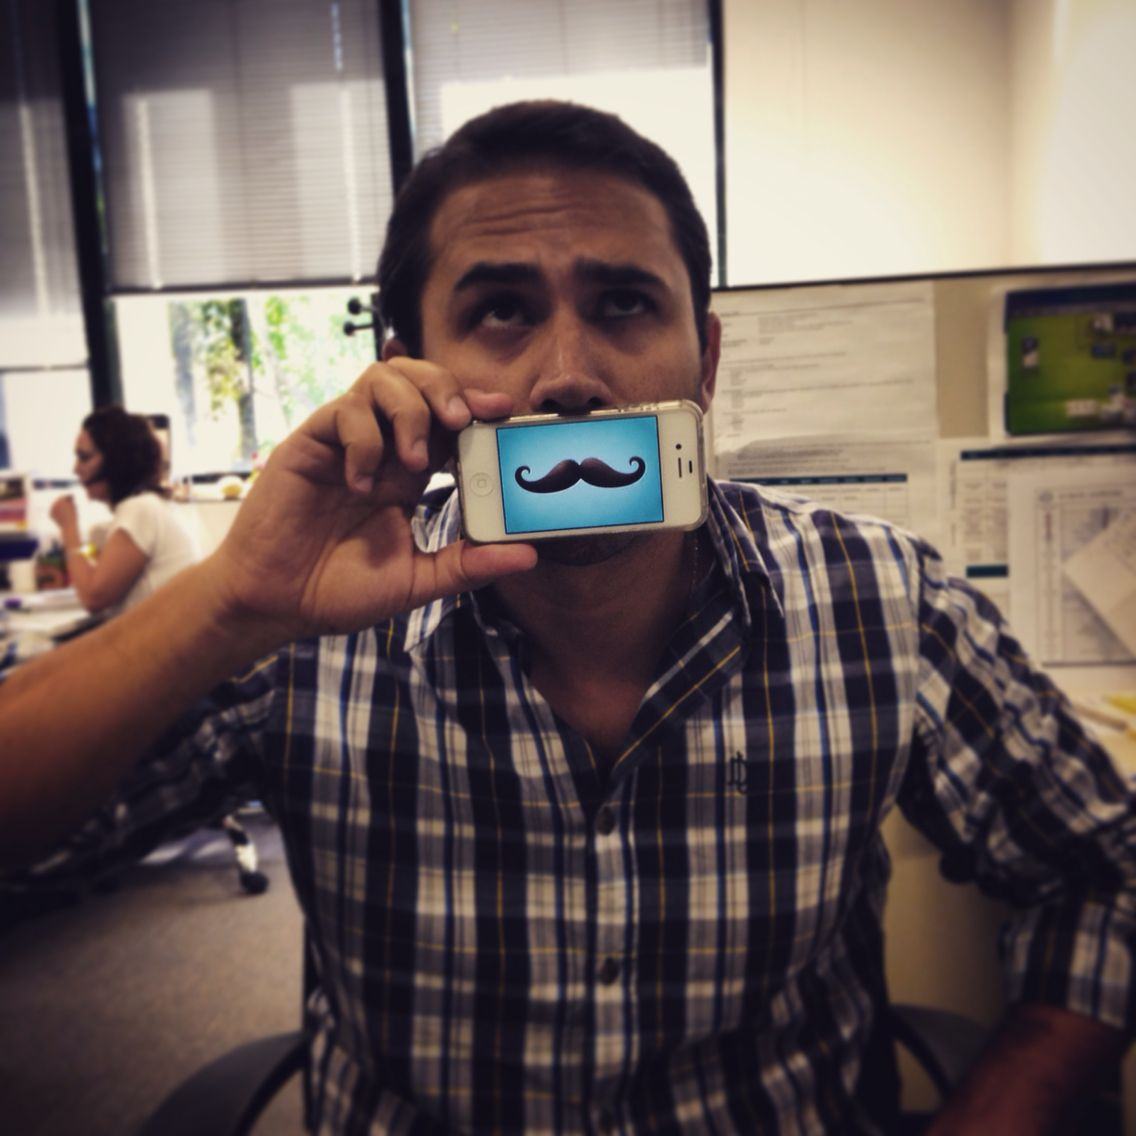 #Letmustaches #Movember Global action to combat cancer @LalcecArgentina #Cancergoesaway.com